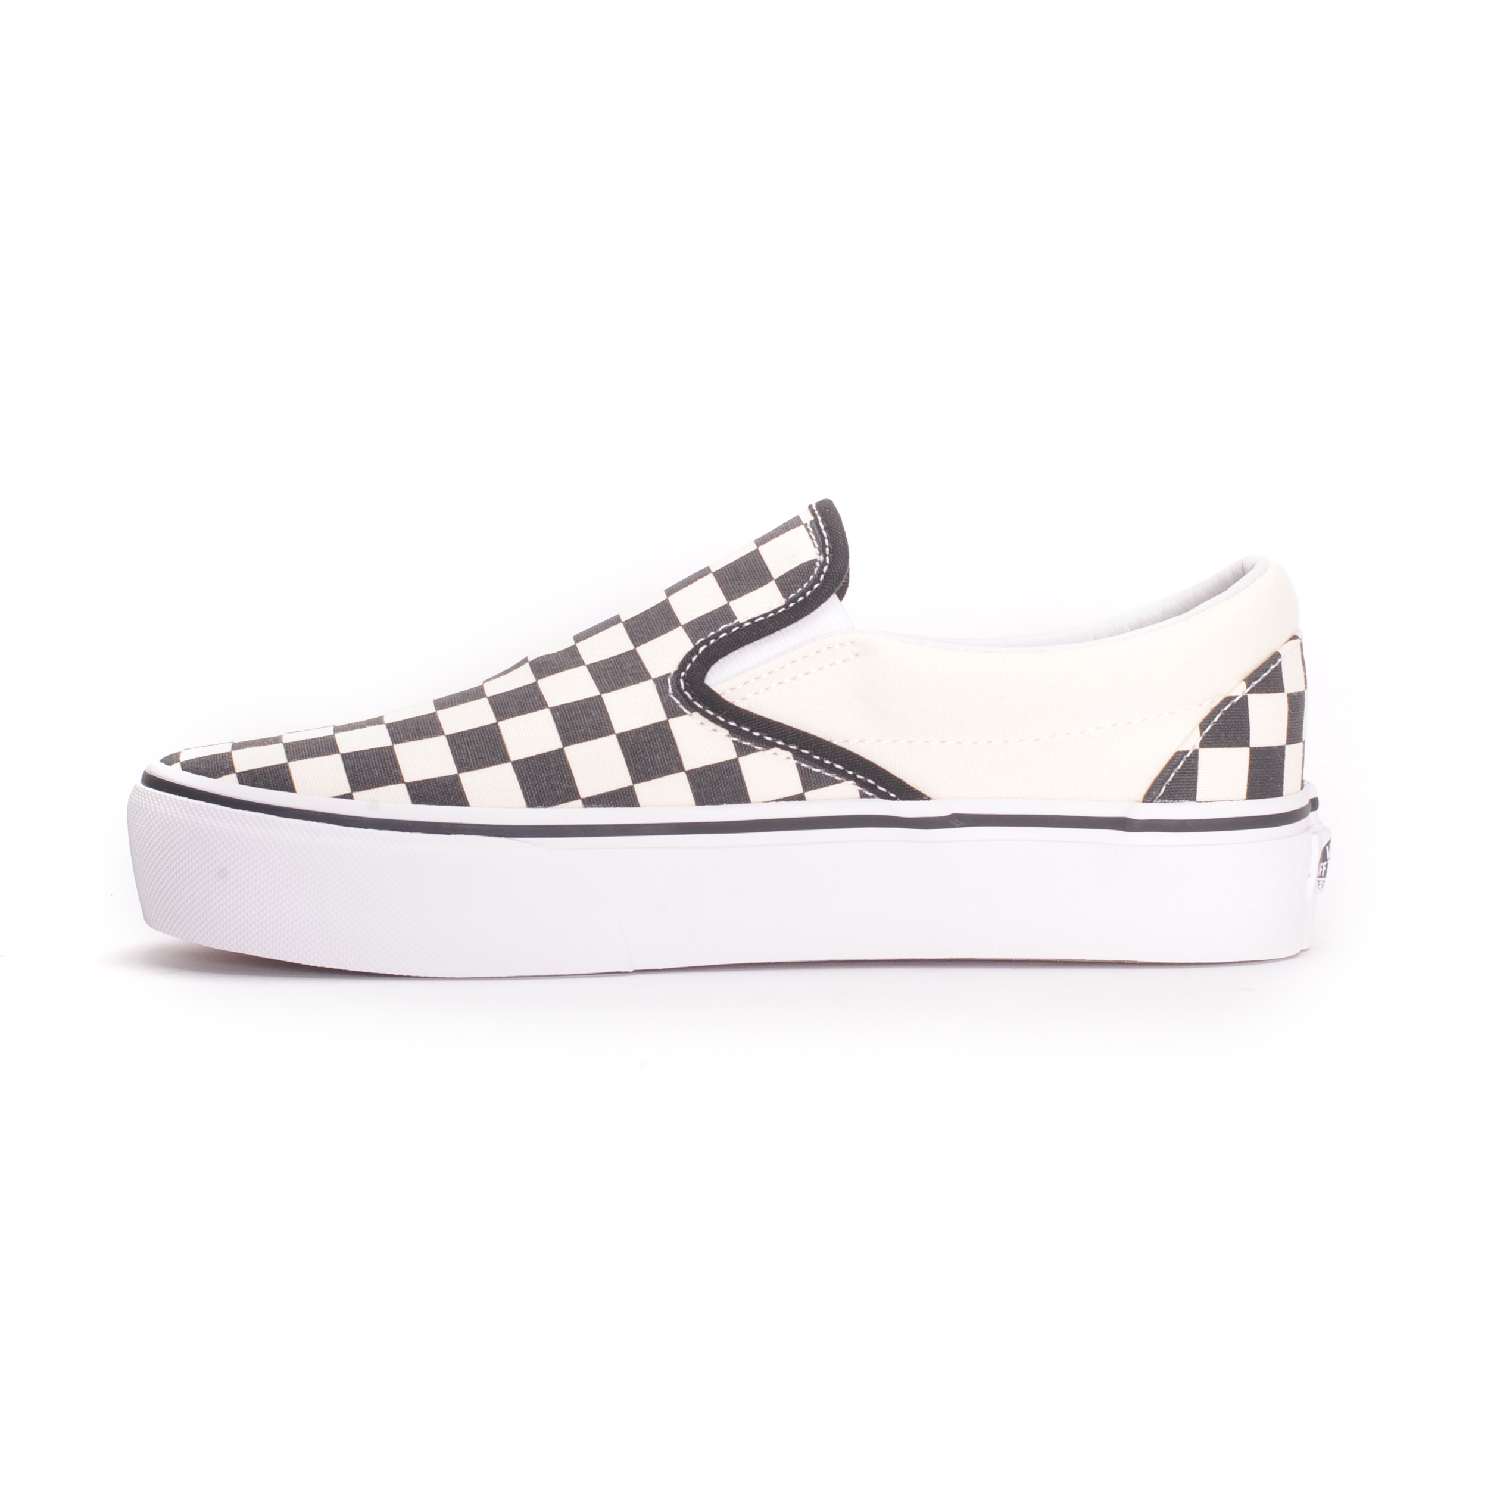 9d62dccf49a Vans Classic Slip-On Platform (Black and White Checkerboard) Women s Shoes  3 3 of 6 ...